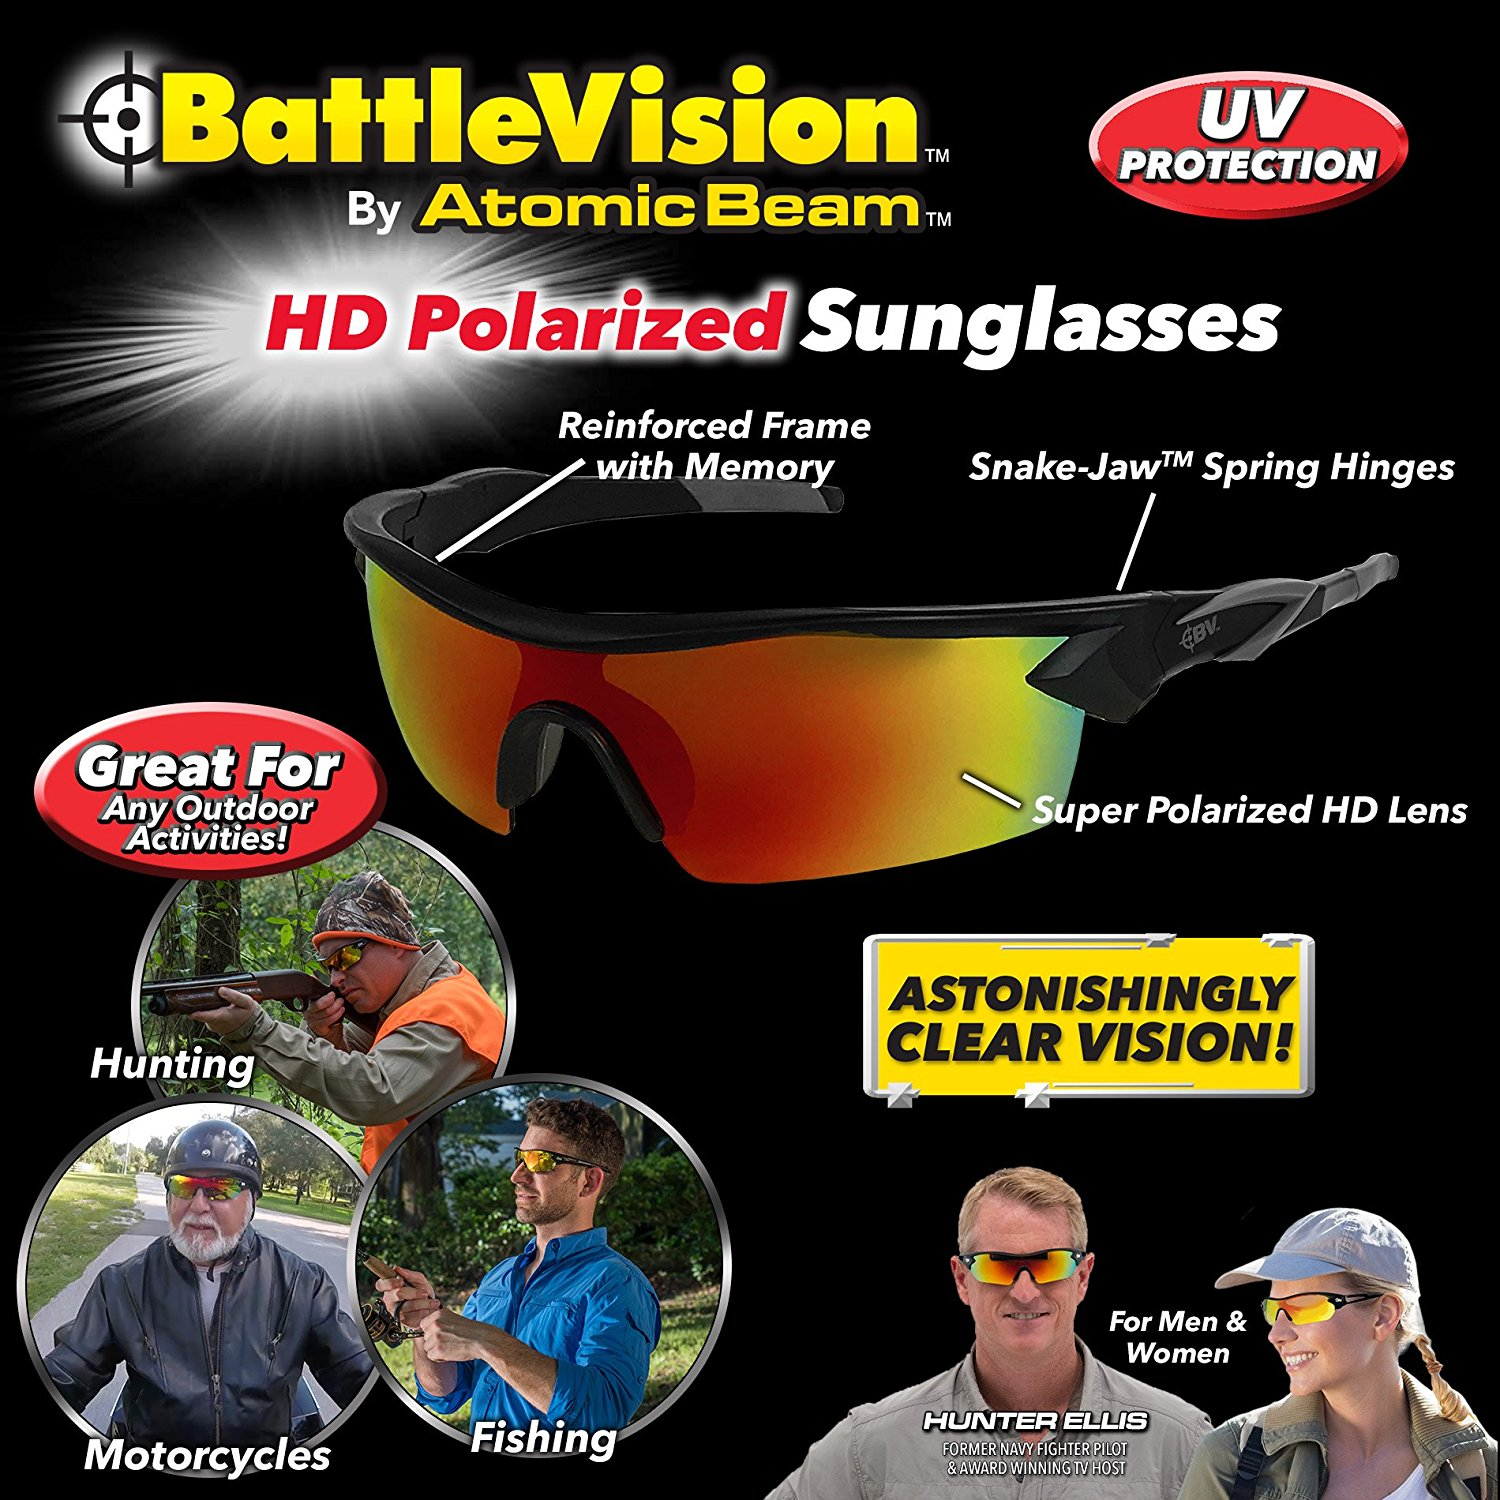 24PCS Deluxe Unisex Battle Vision Hi-Tech HD Polarized Sunglasses 10X Clearer UV Protection For Sports Fishing Hunting